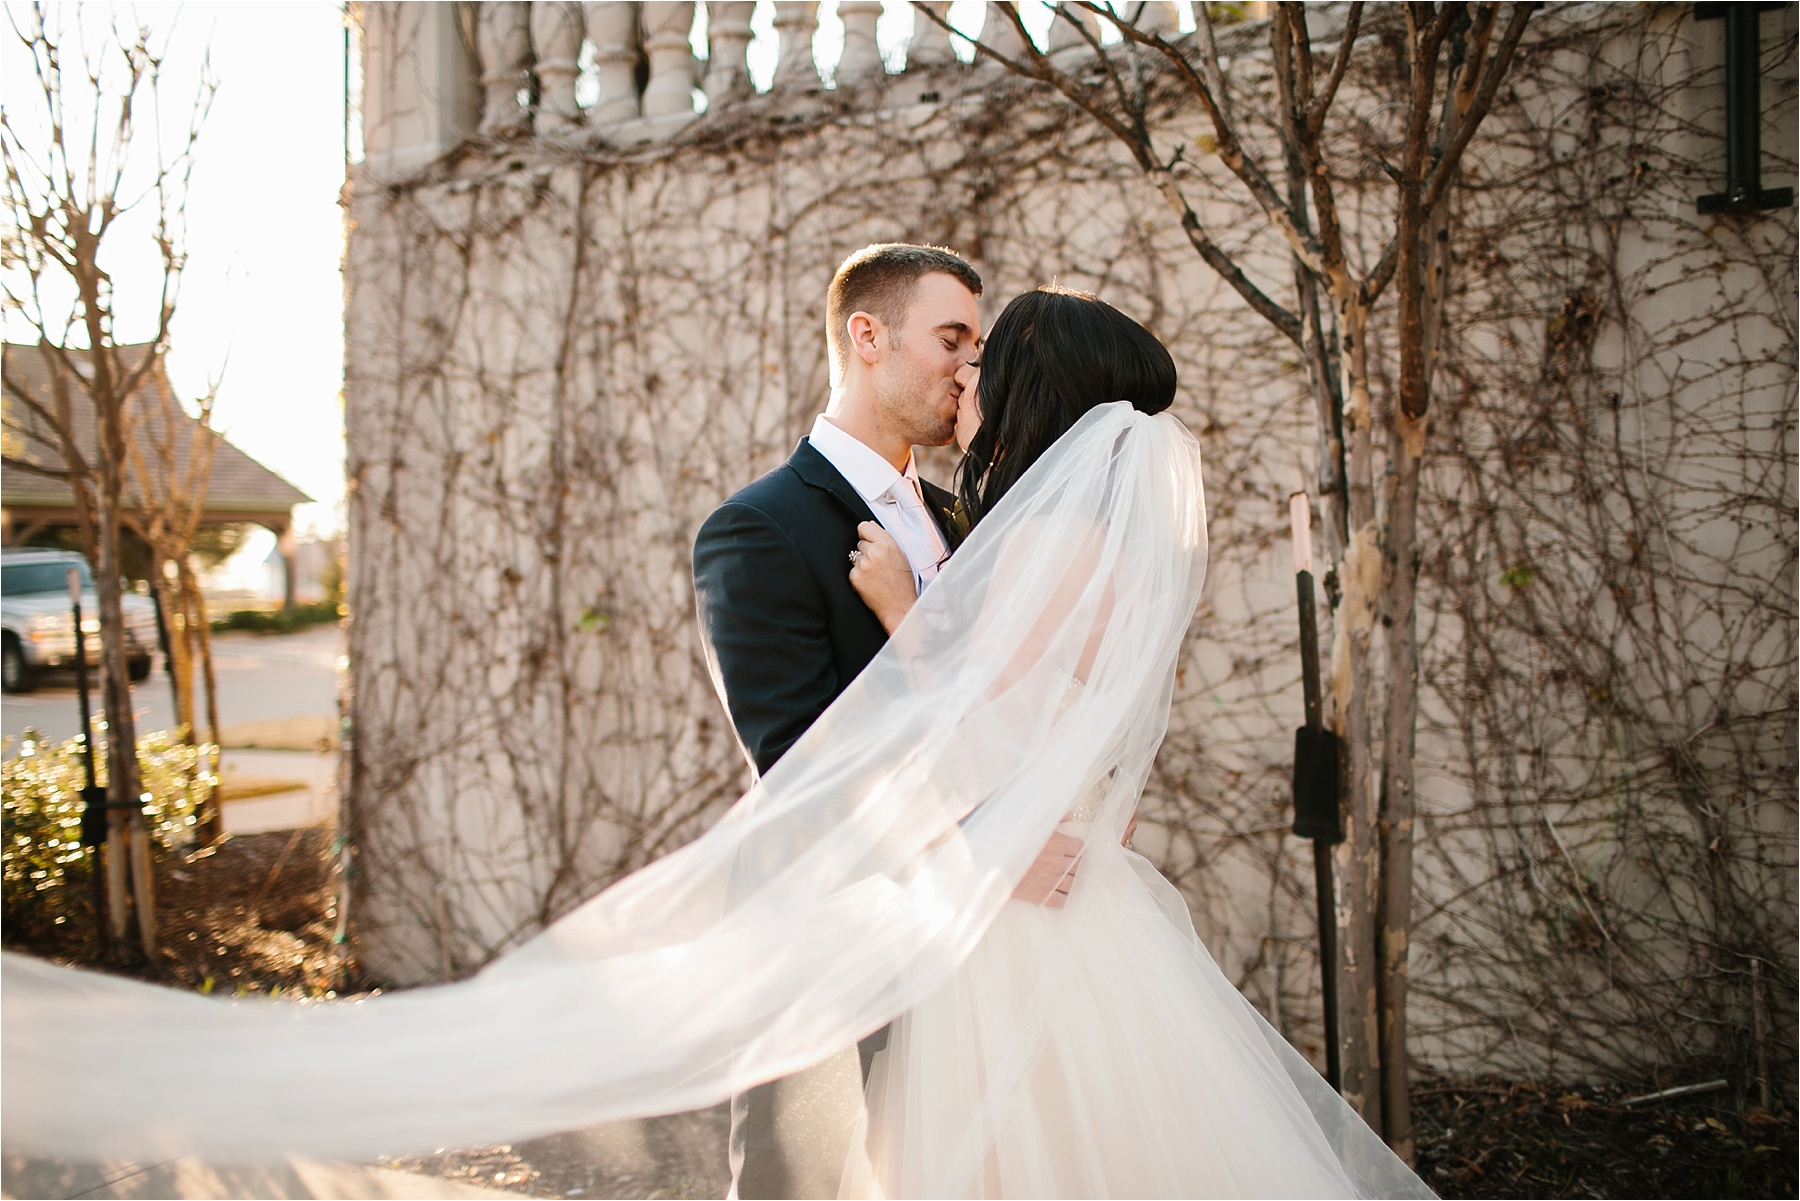 Chrissy + Zach __ The Windsor at Hebron Park Wedding by North Texas Wedding Photographer _ Rachel Meagan Photography __055